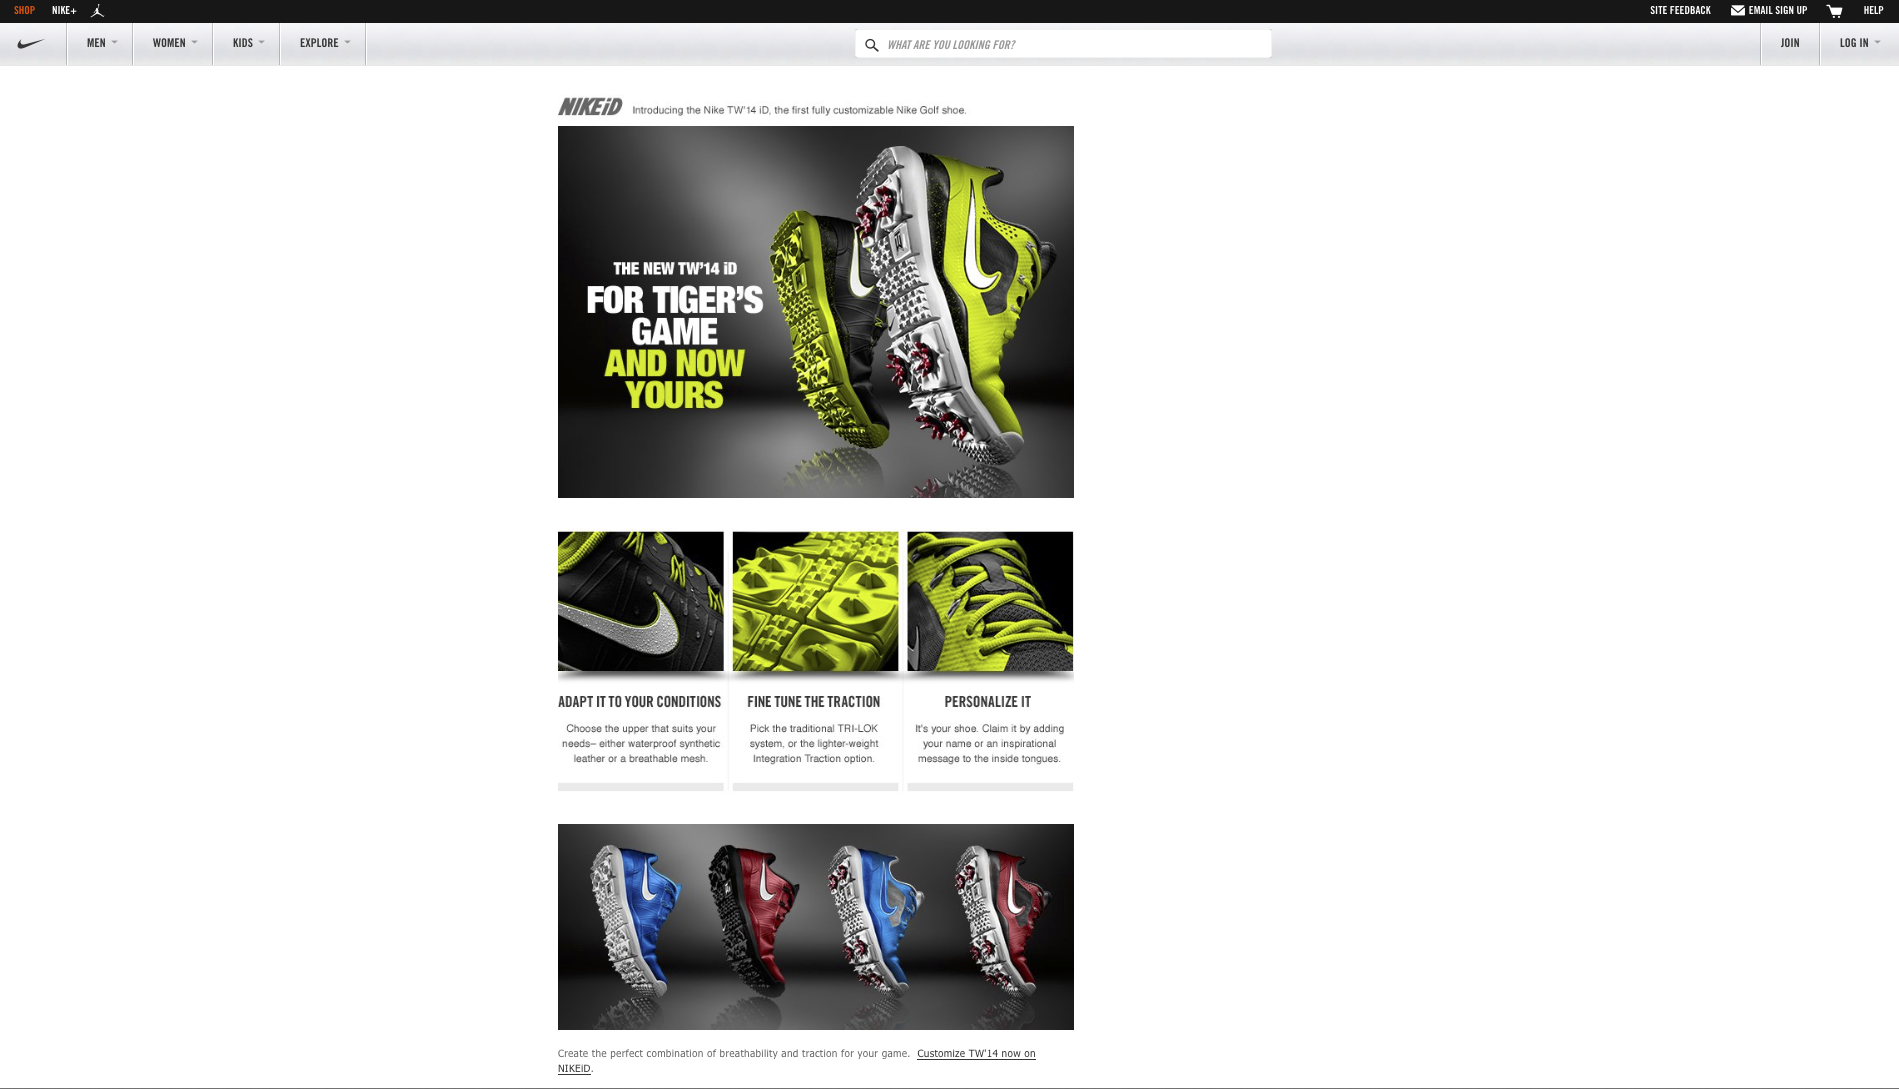 Imagery used at  Nike.com